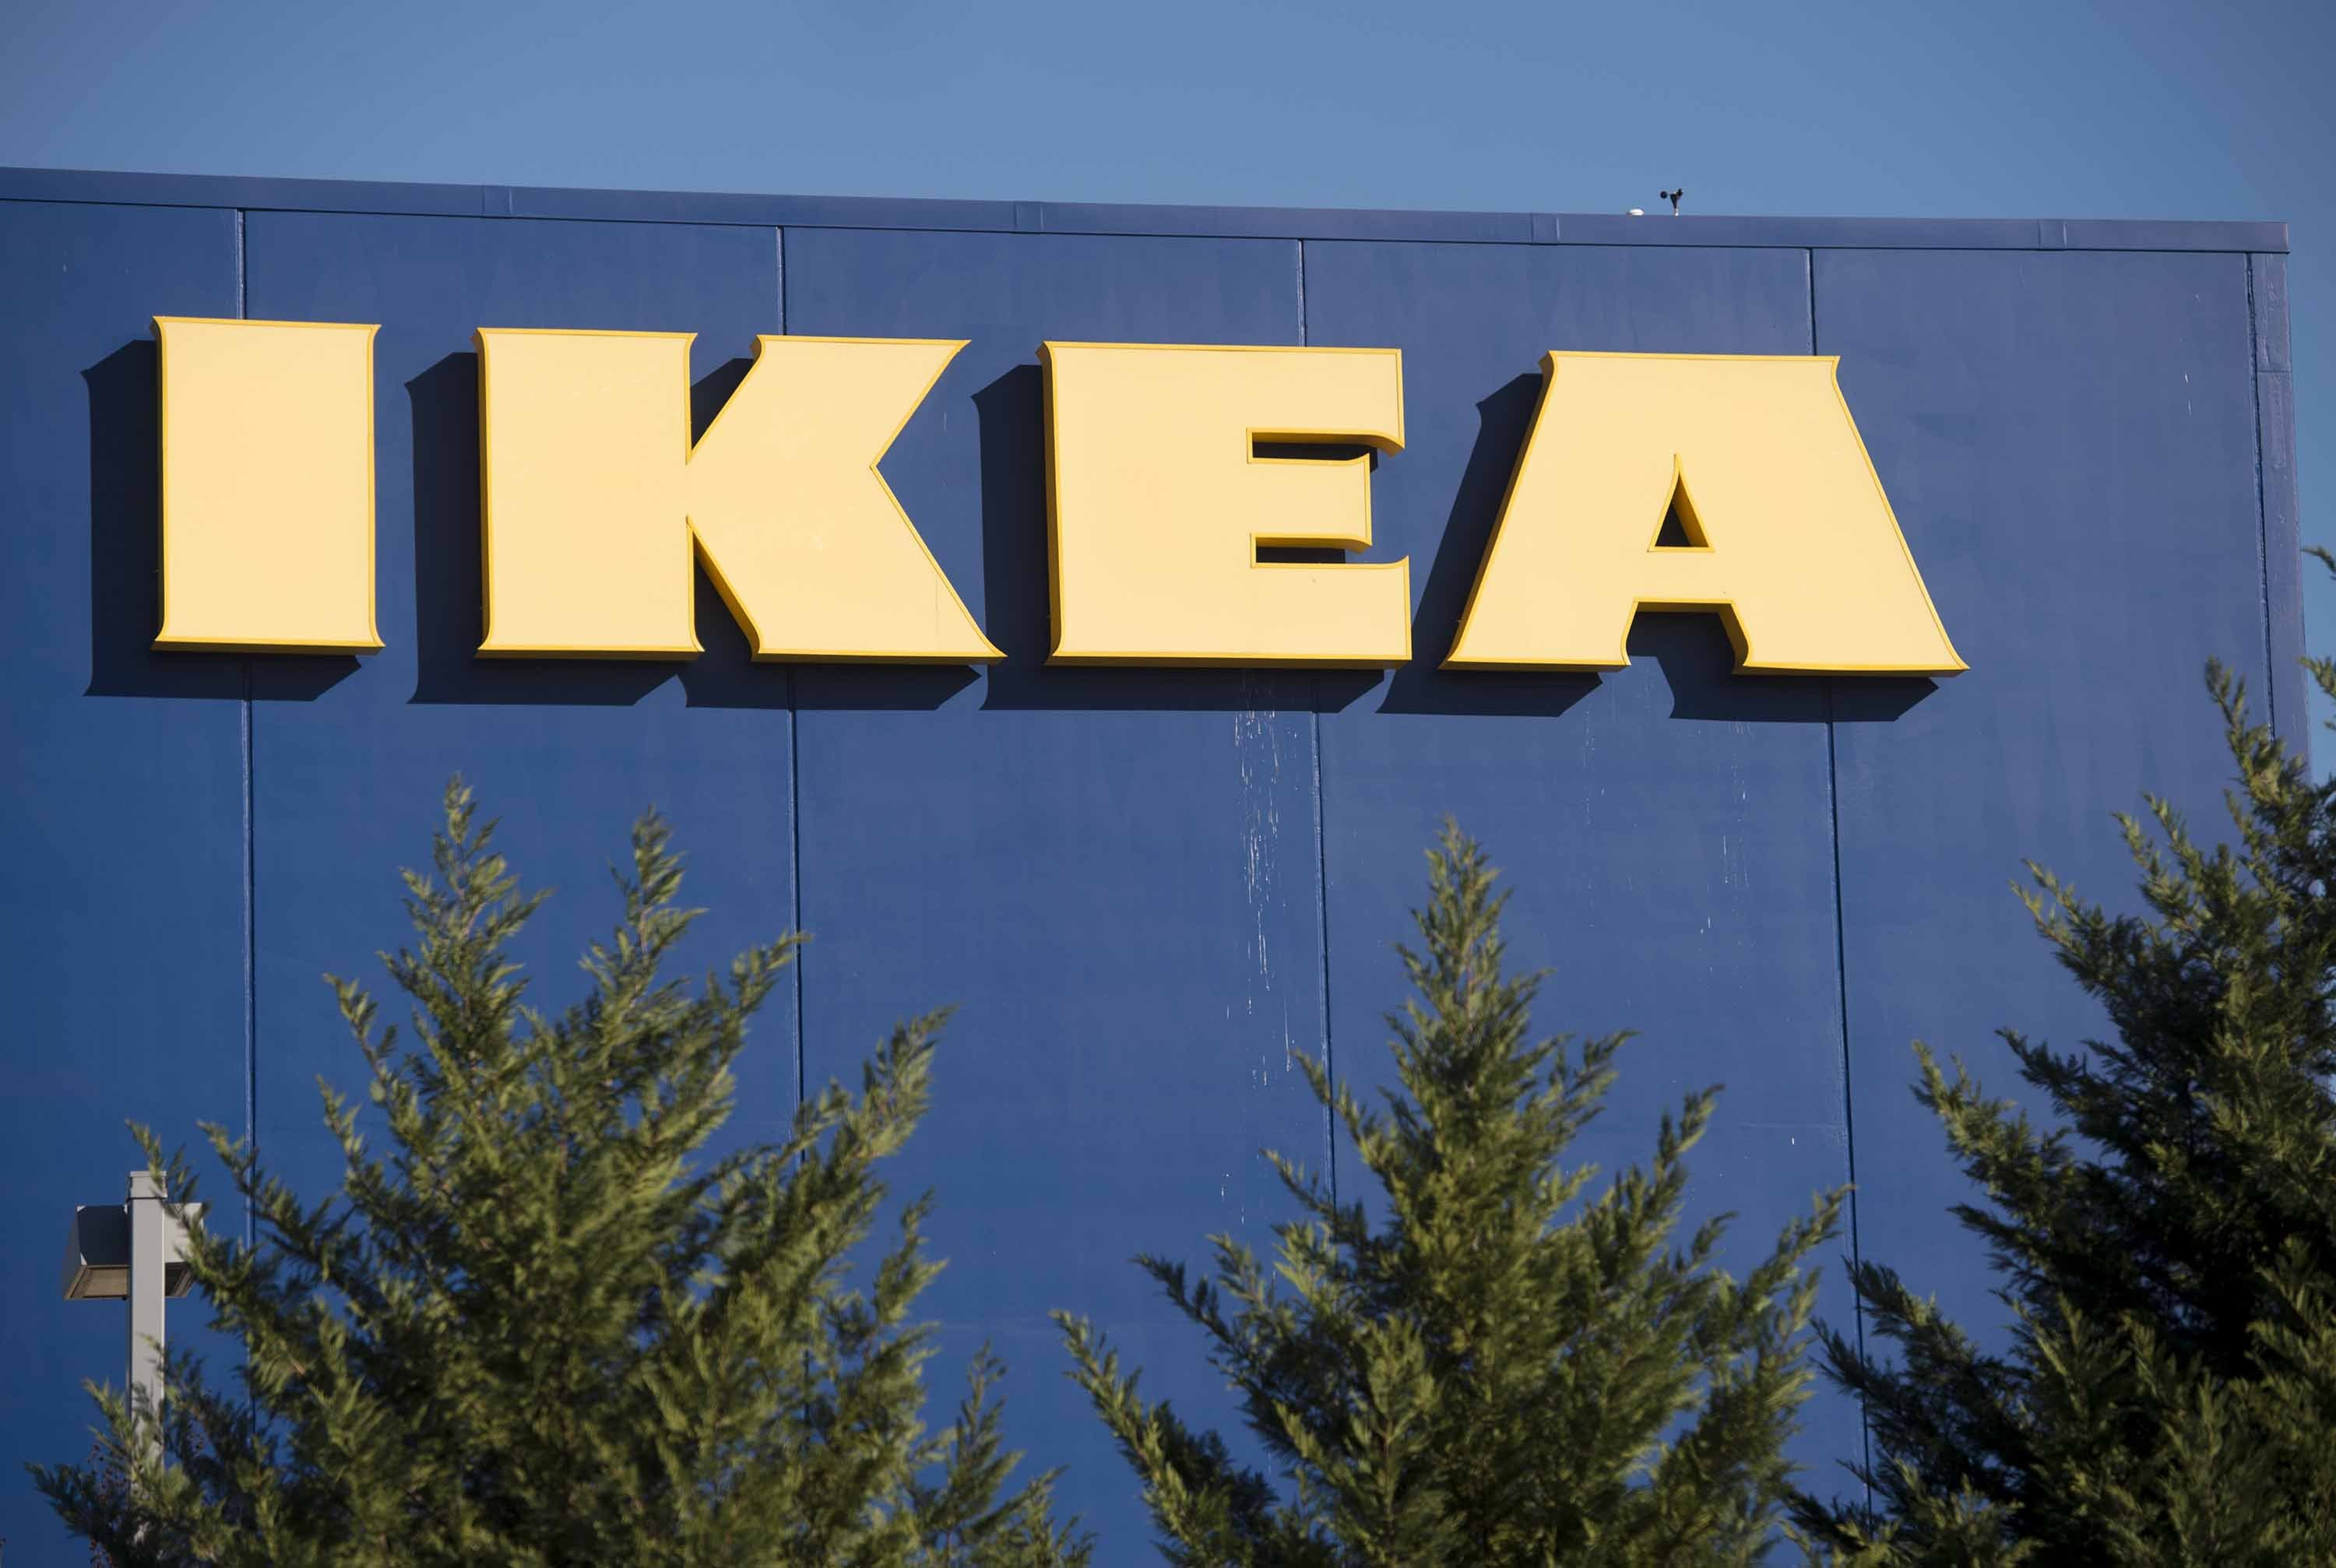 Ikea is closing its only US factory and moving production to Europe